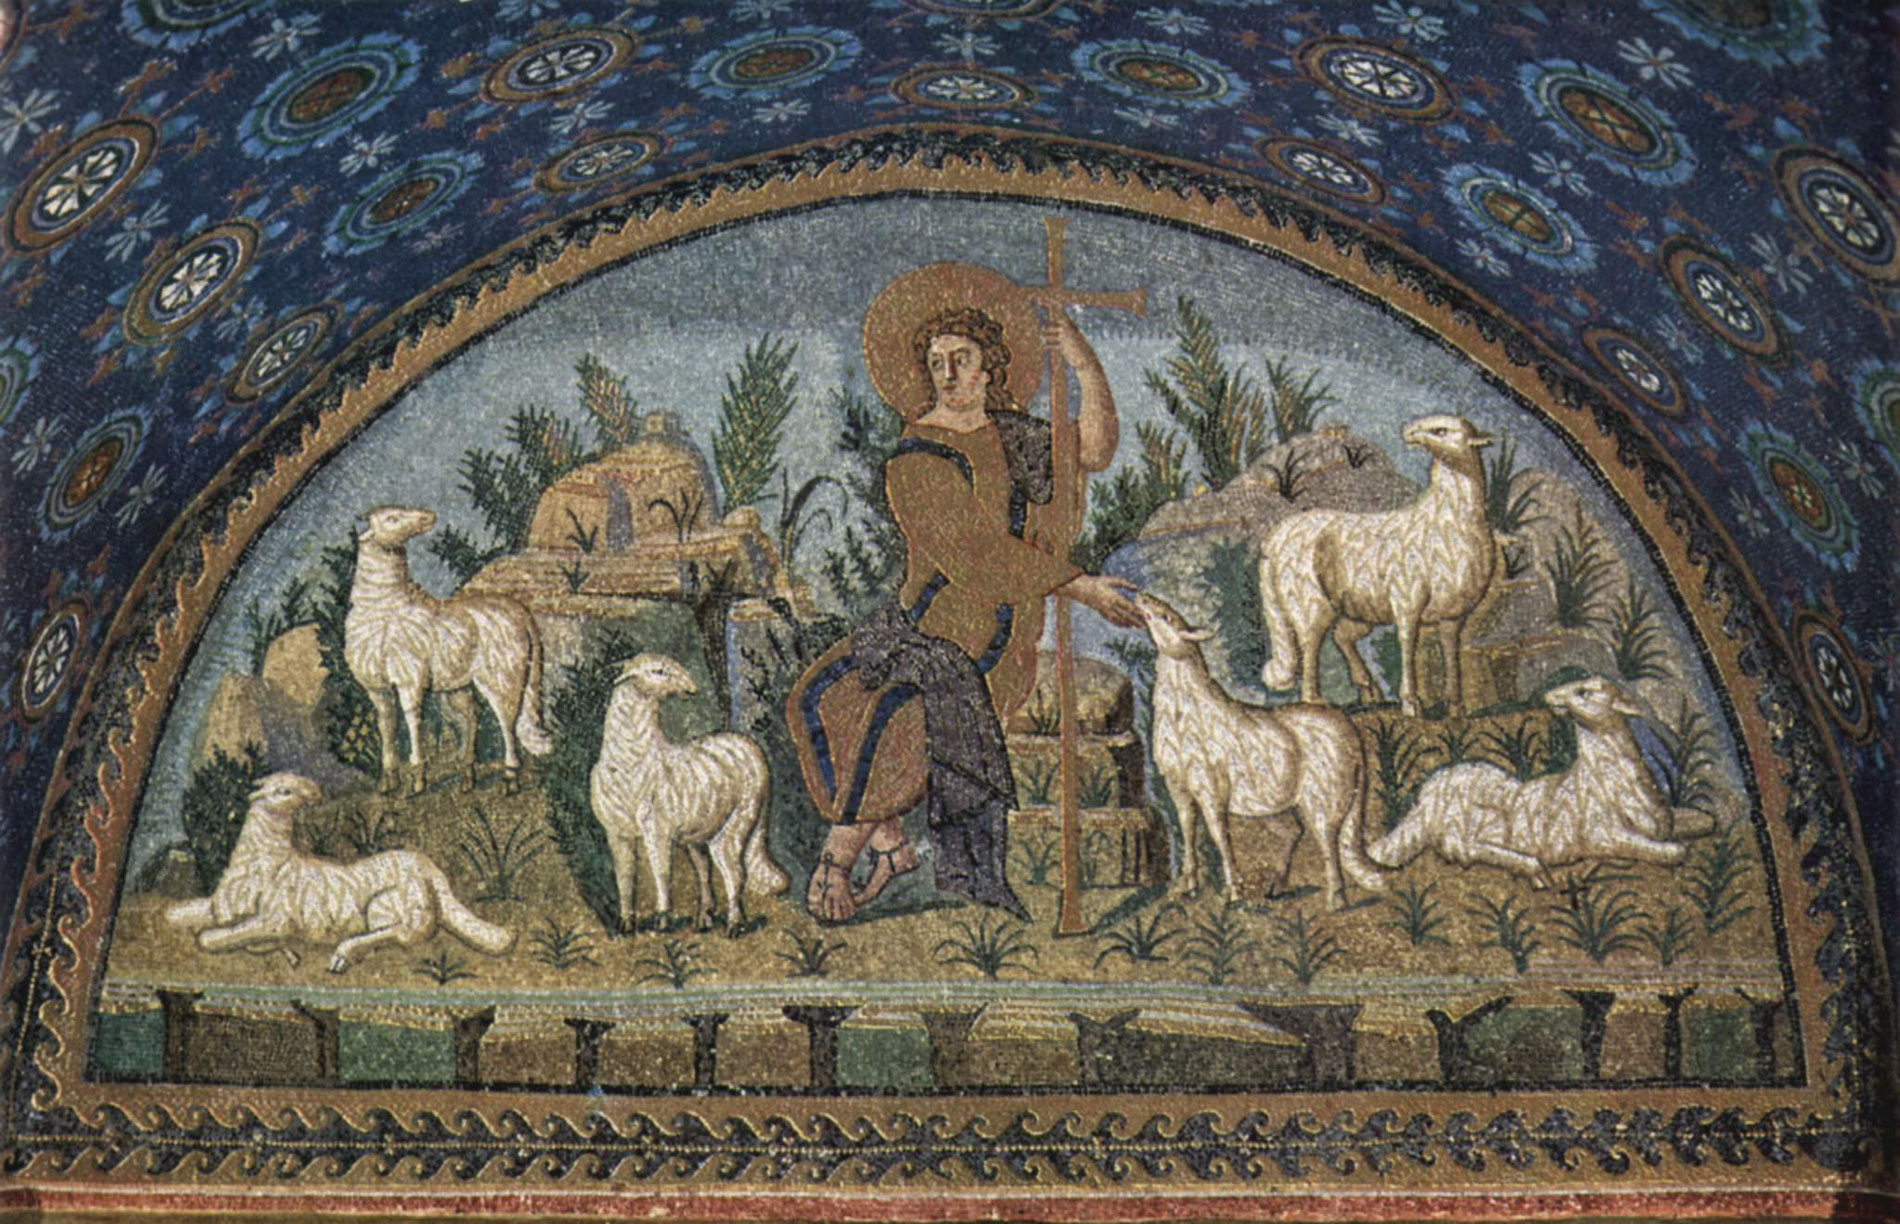 mosaic Christ Good Shepherd Augustine Ezekiel Paul pastors shepherds who feed themselves flock sheep